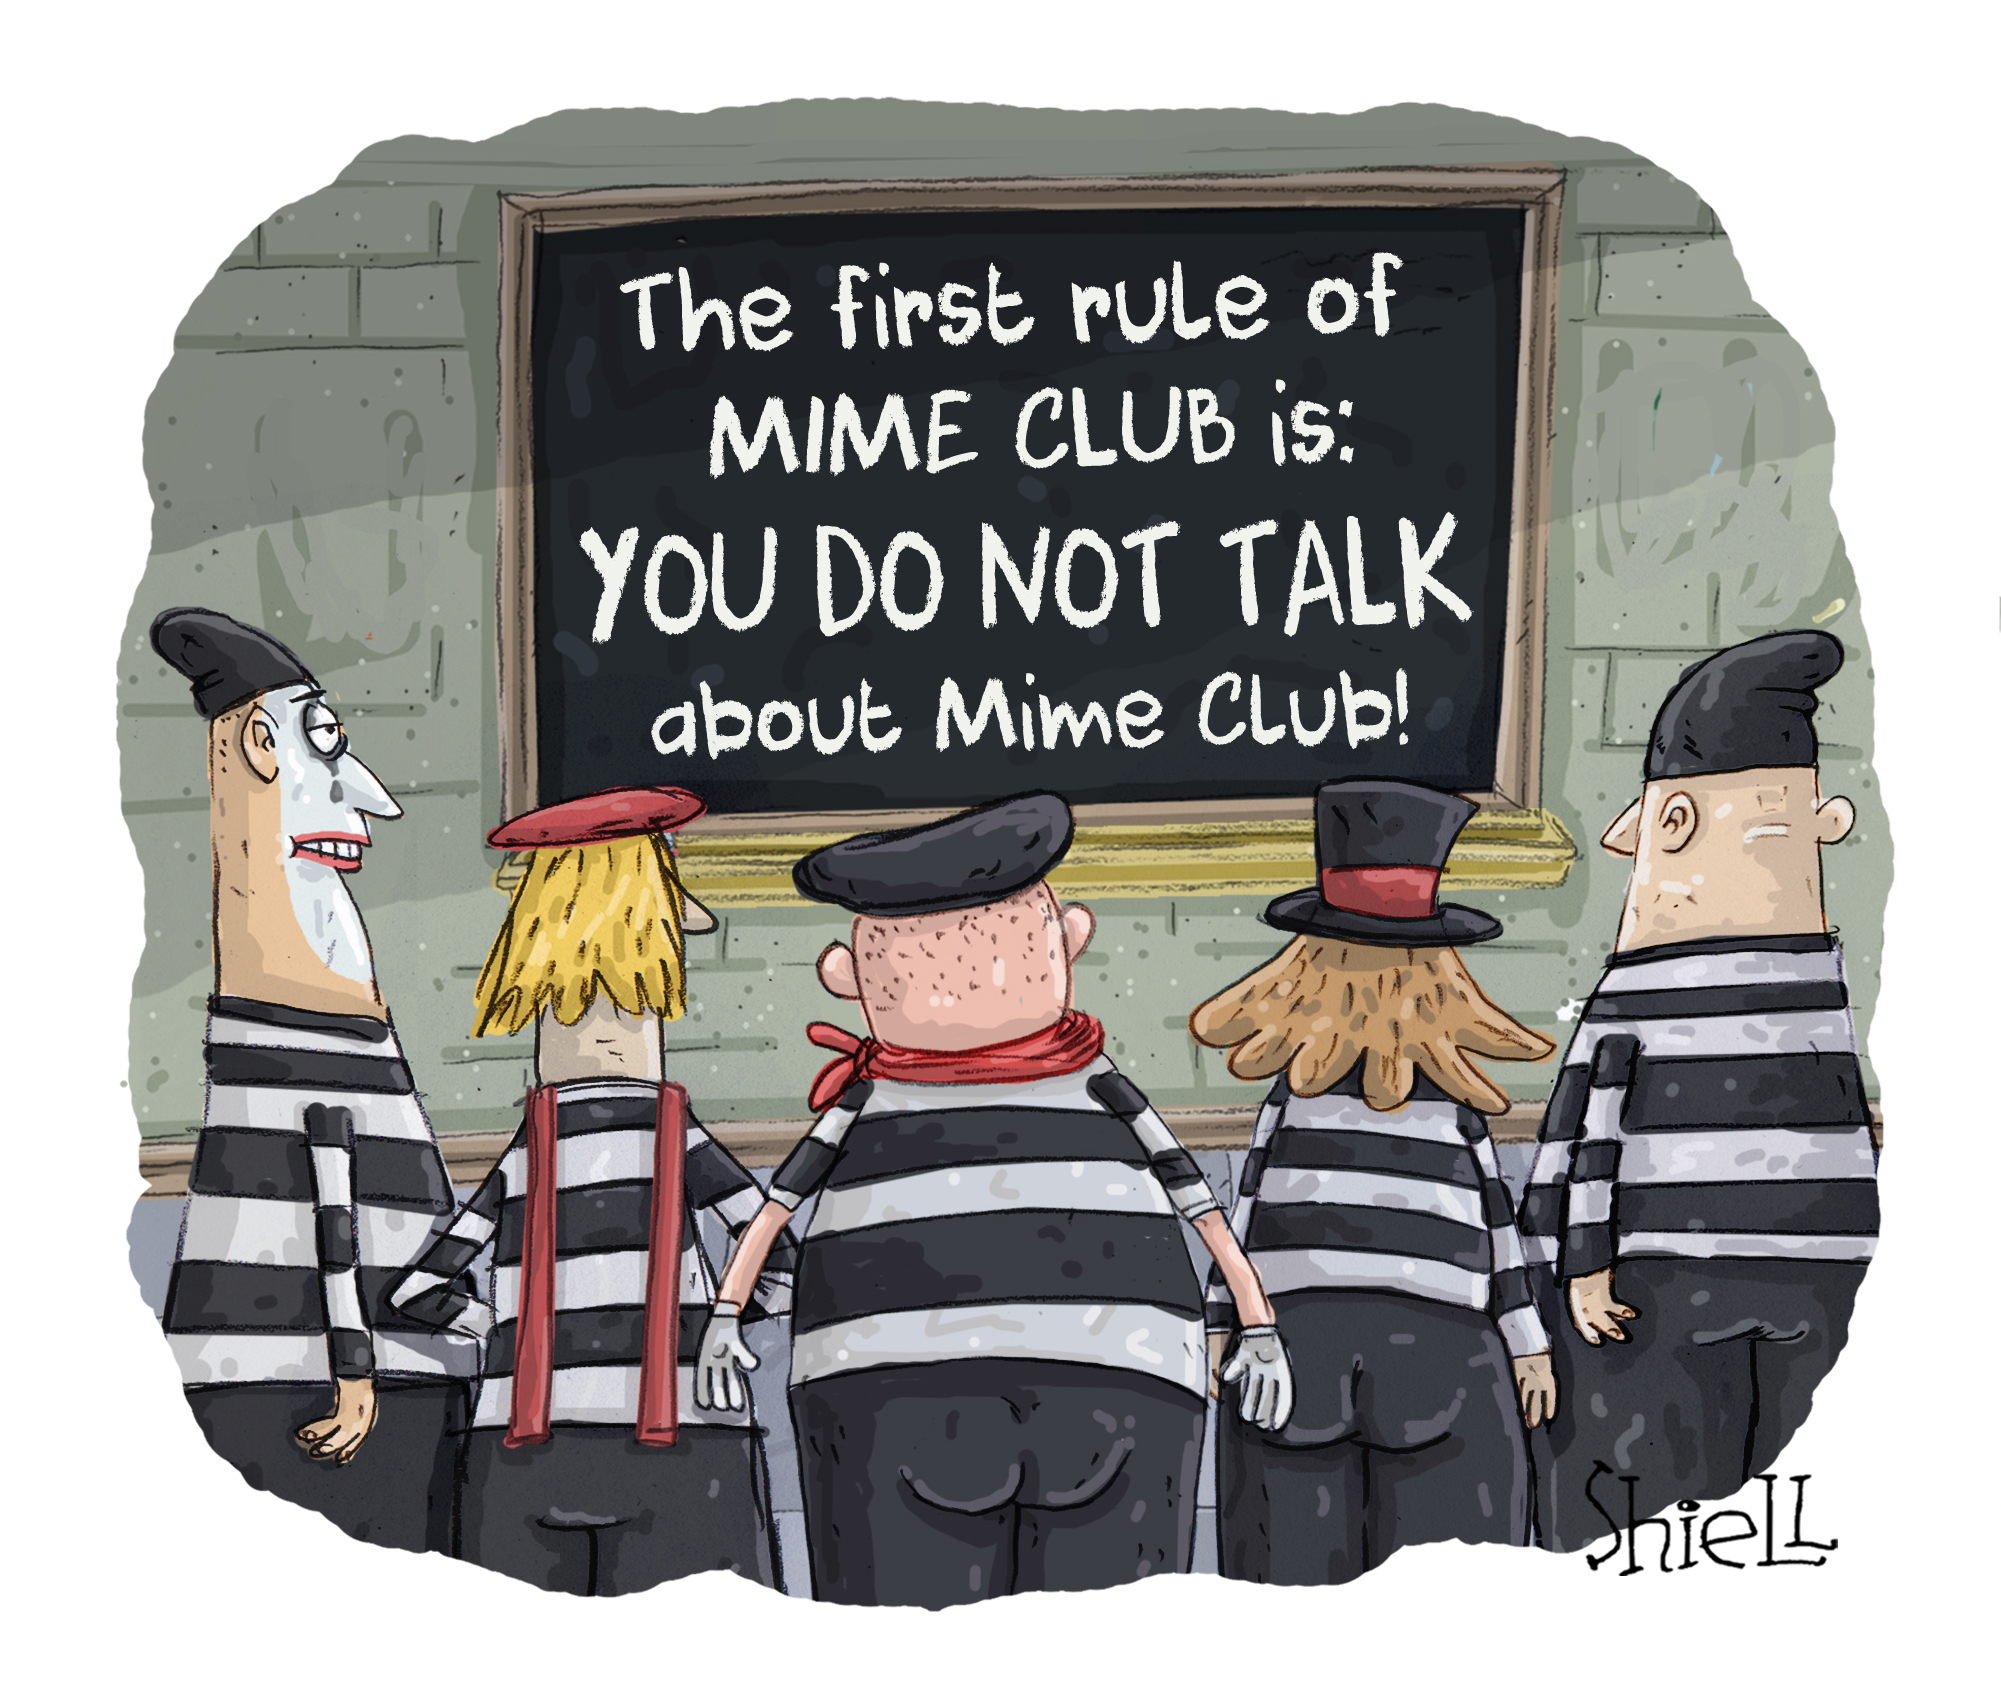 The First rule of Mime Club is ...